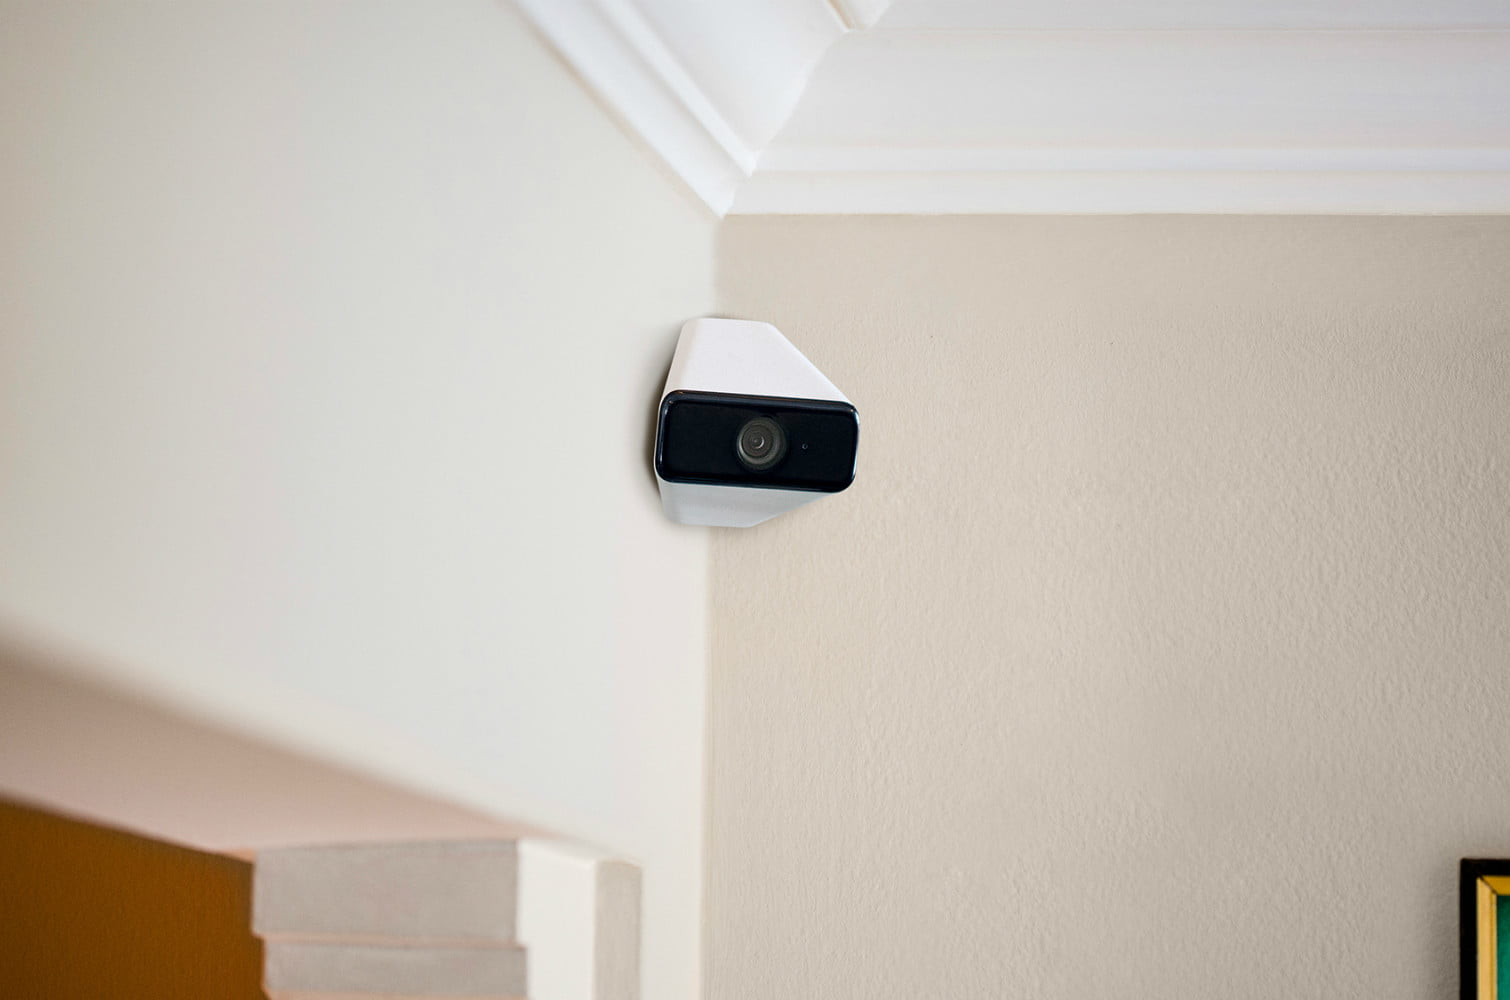 spy on your pets with comcast xfinity camera ai powered pet filter mounted in home